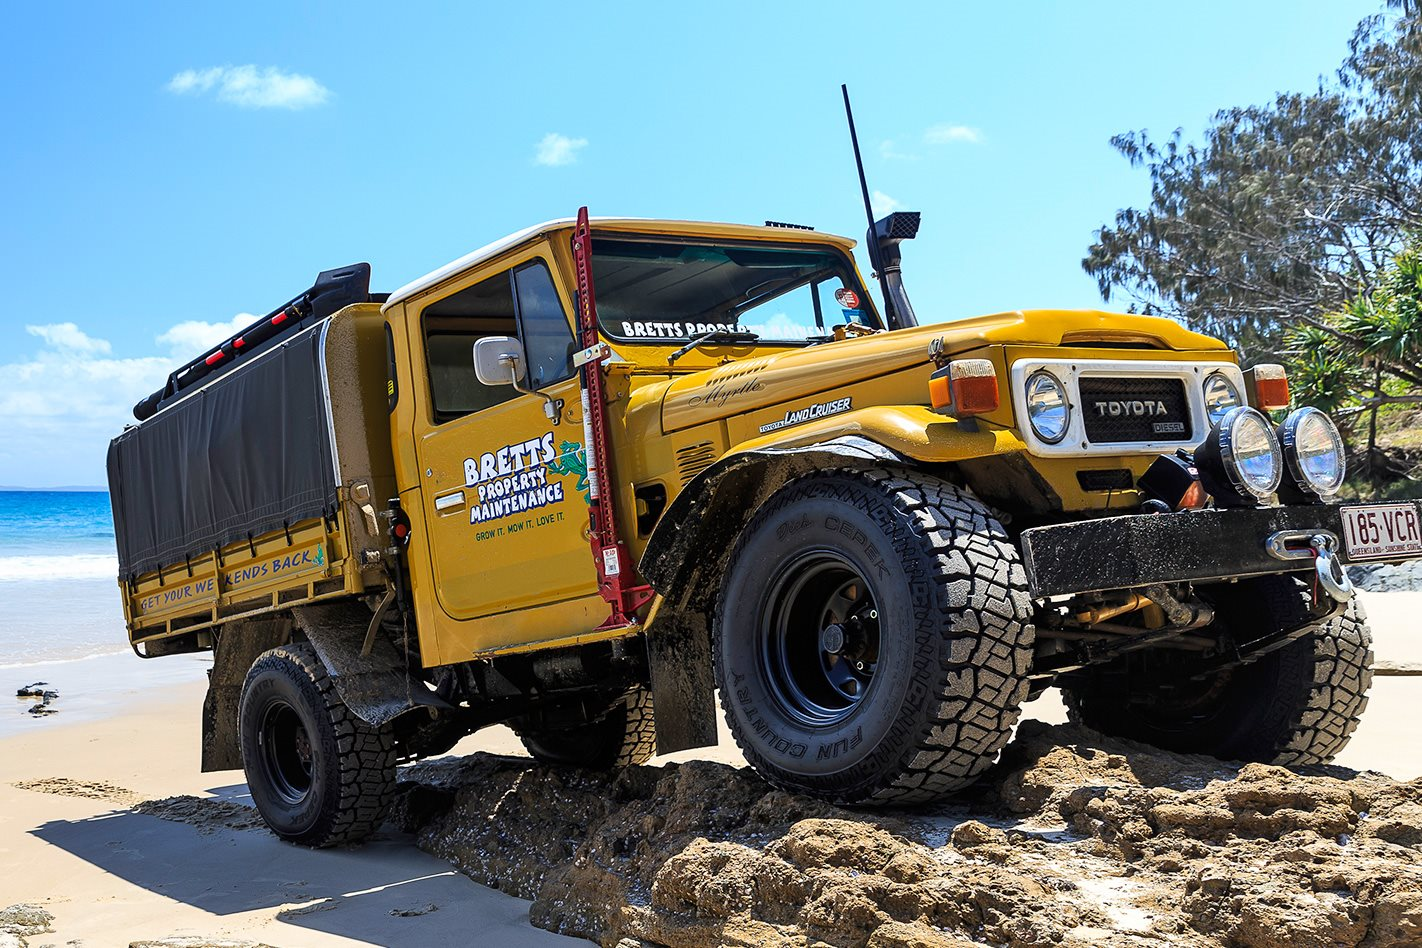 Custom 4x4 Toyota 40 Series Land Cruiser 4x4 Australia